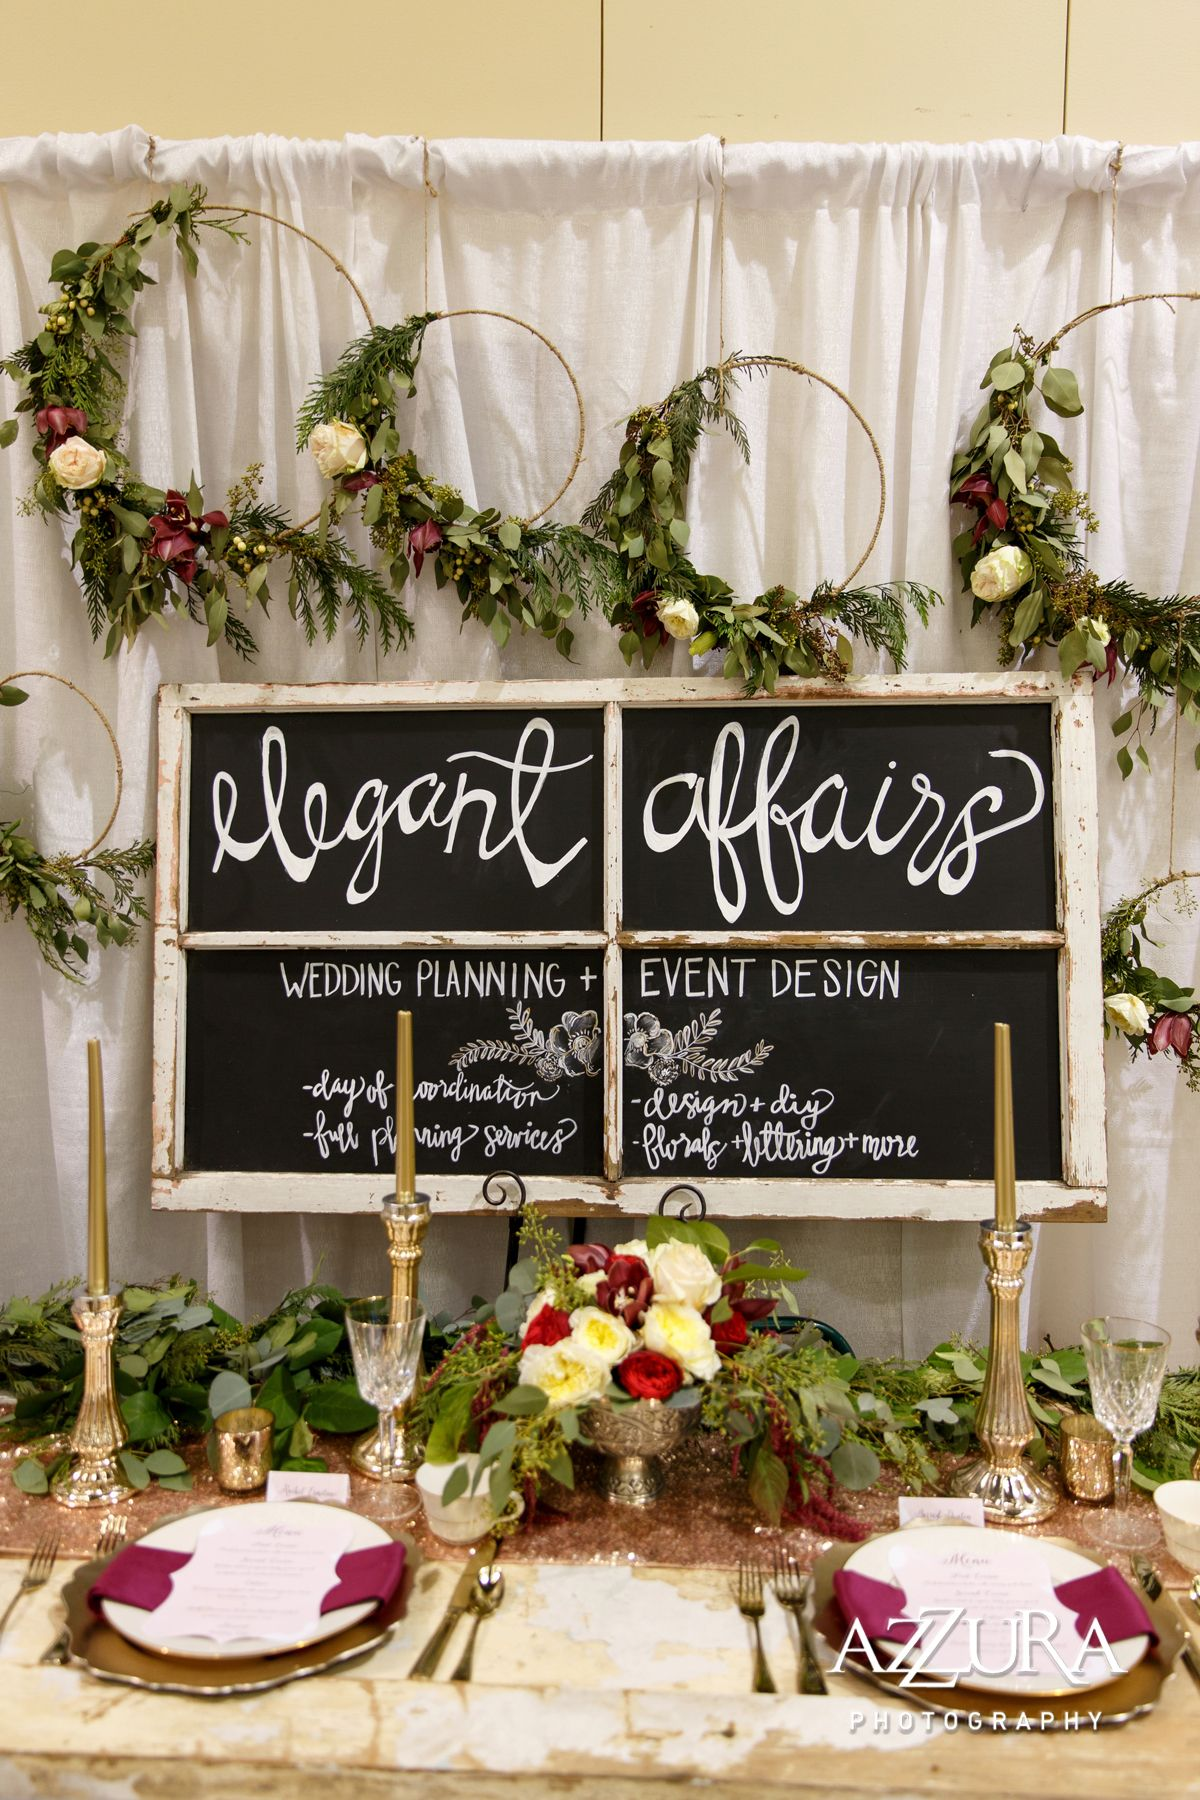 Wedding Show Booth At 2016 Seattle Wedding Show Wedding Wedding Show Booth Seattle Wedding Plan Wedding Show Booth Bridal Show Booths Wedding Vendors Booth